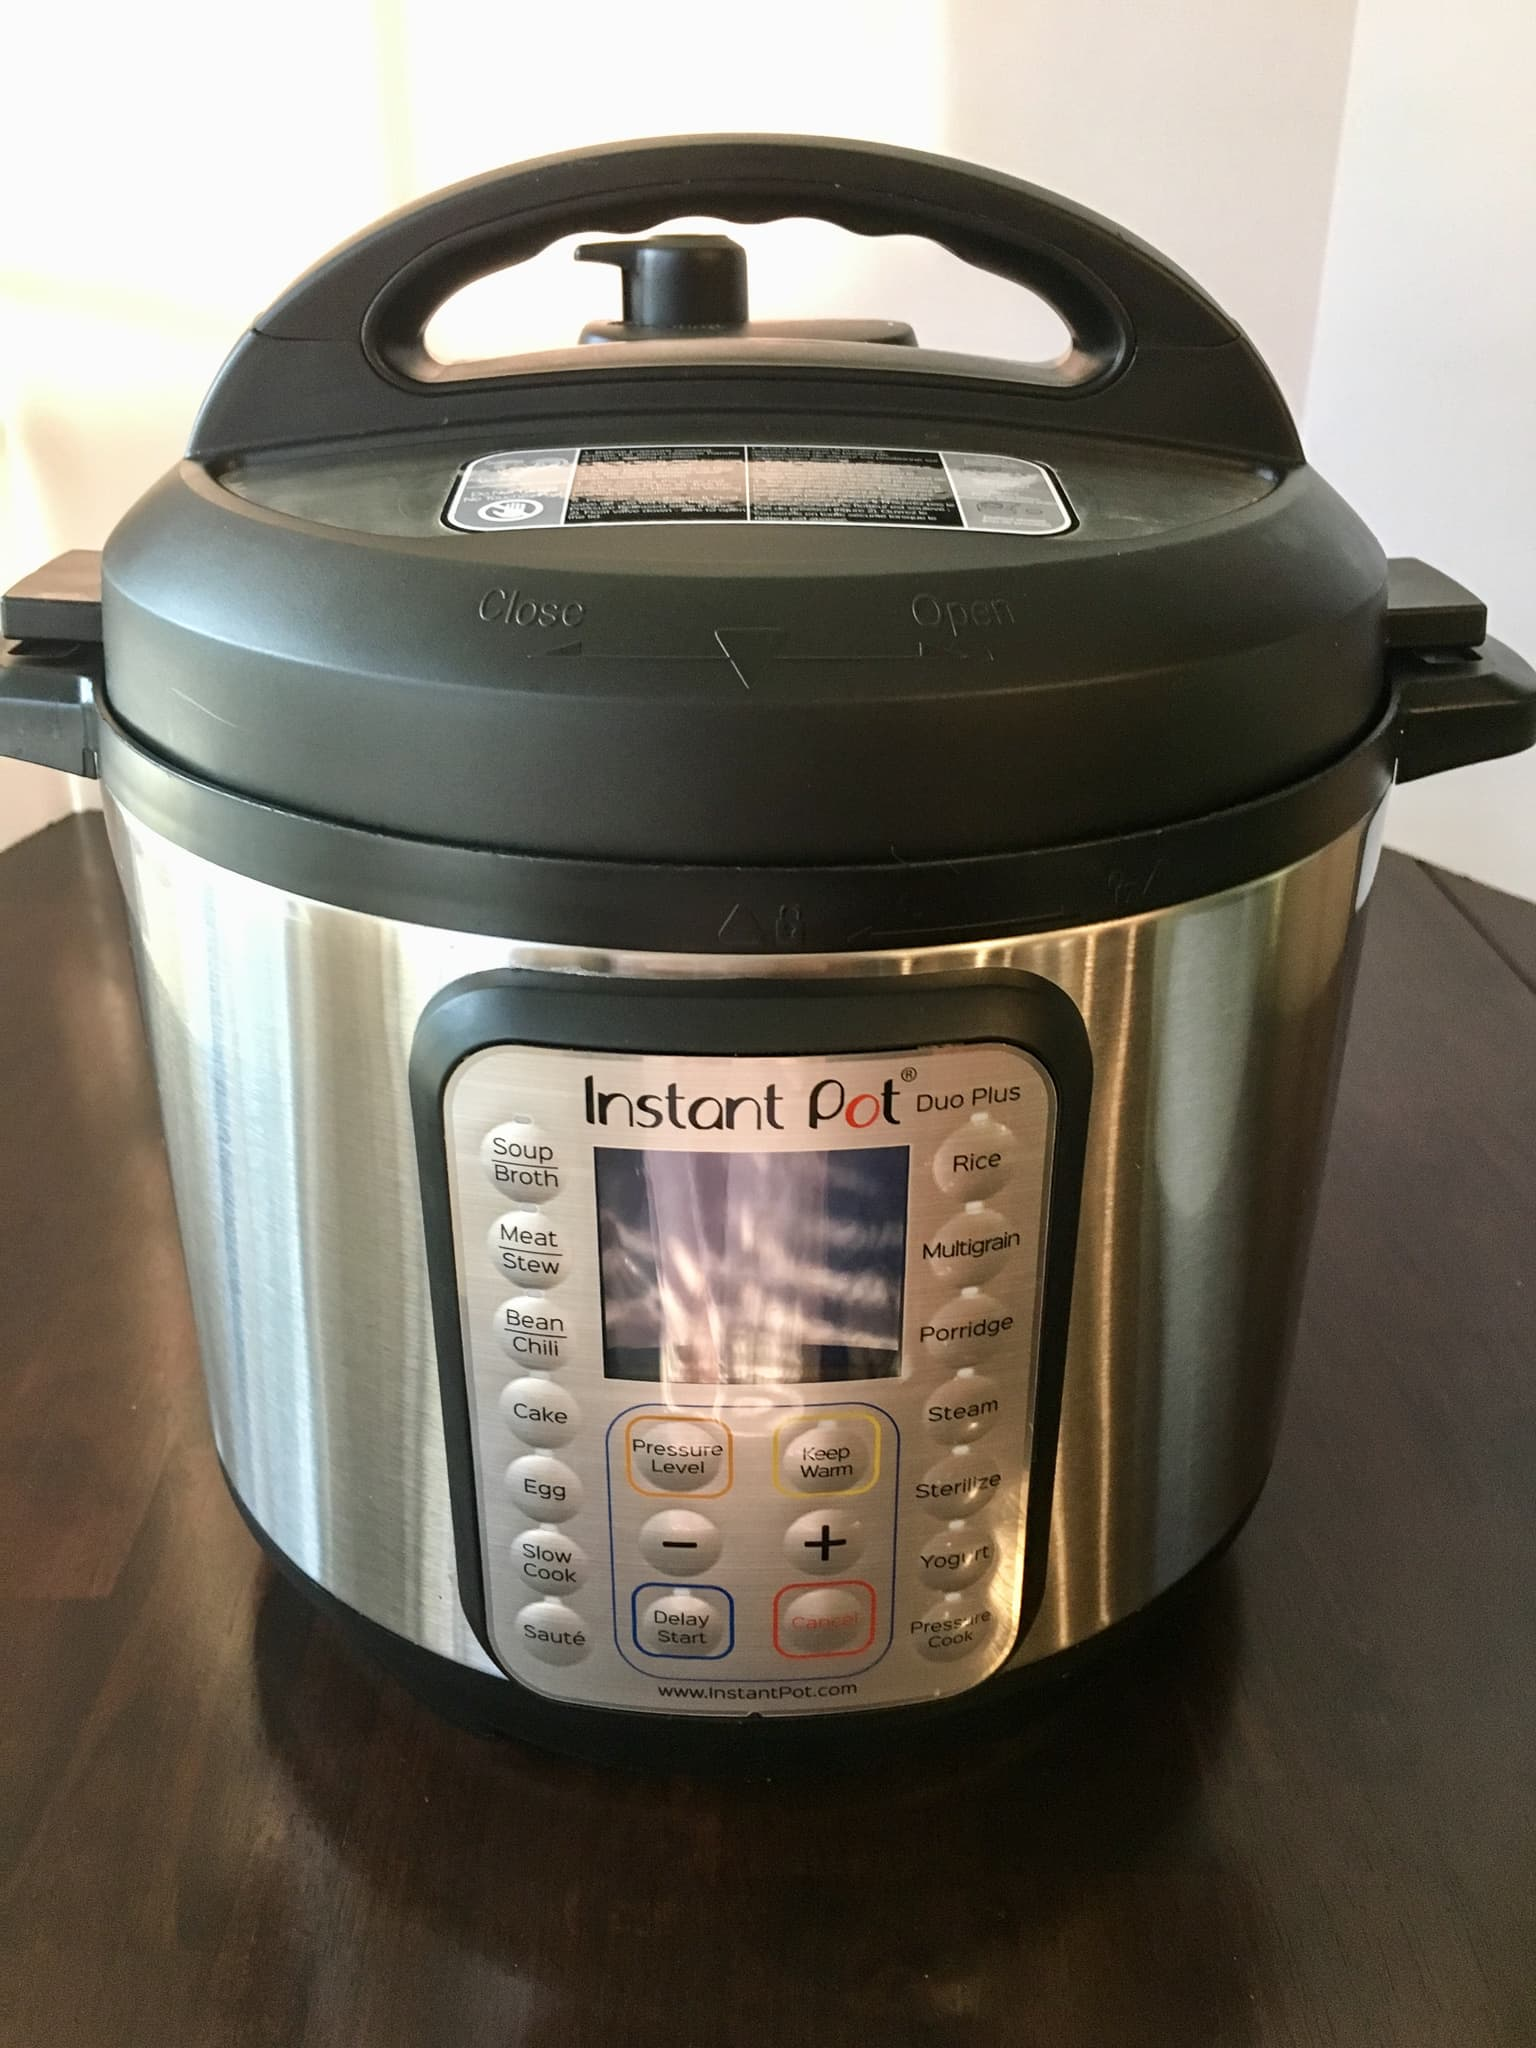 A picture of the Instant Pot